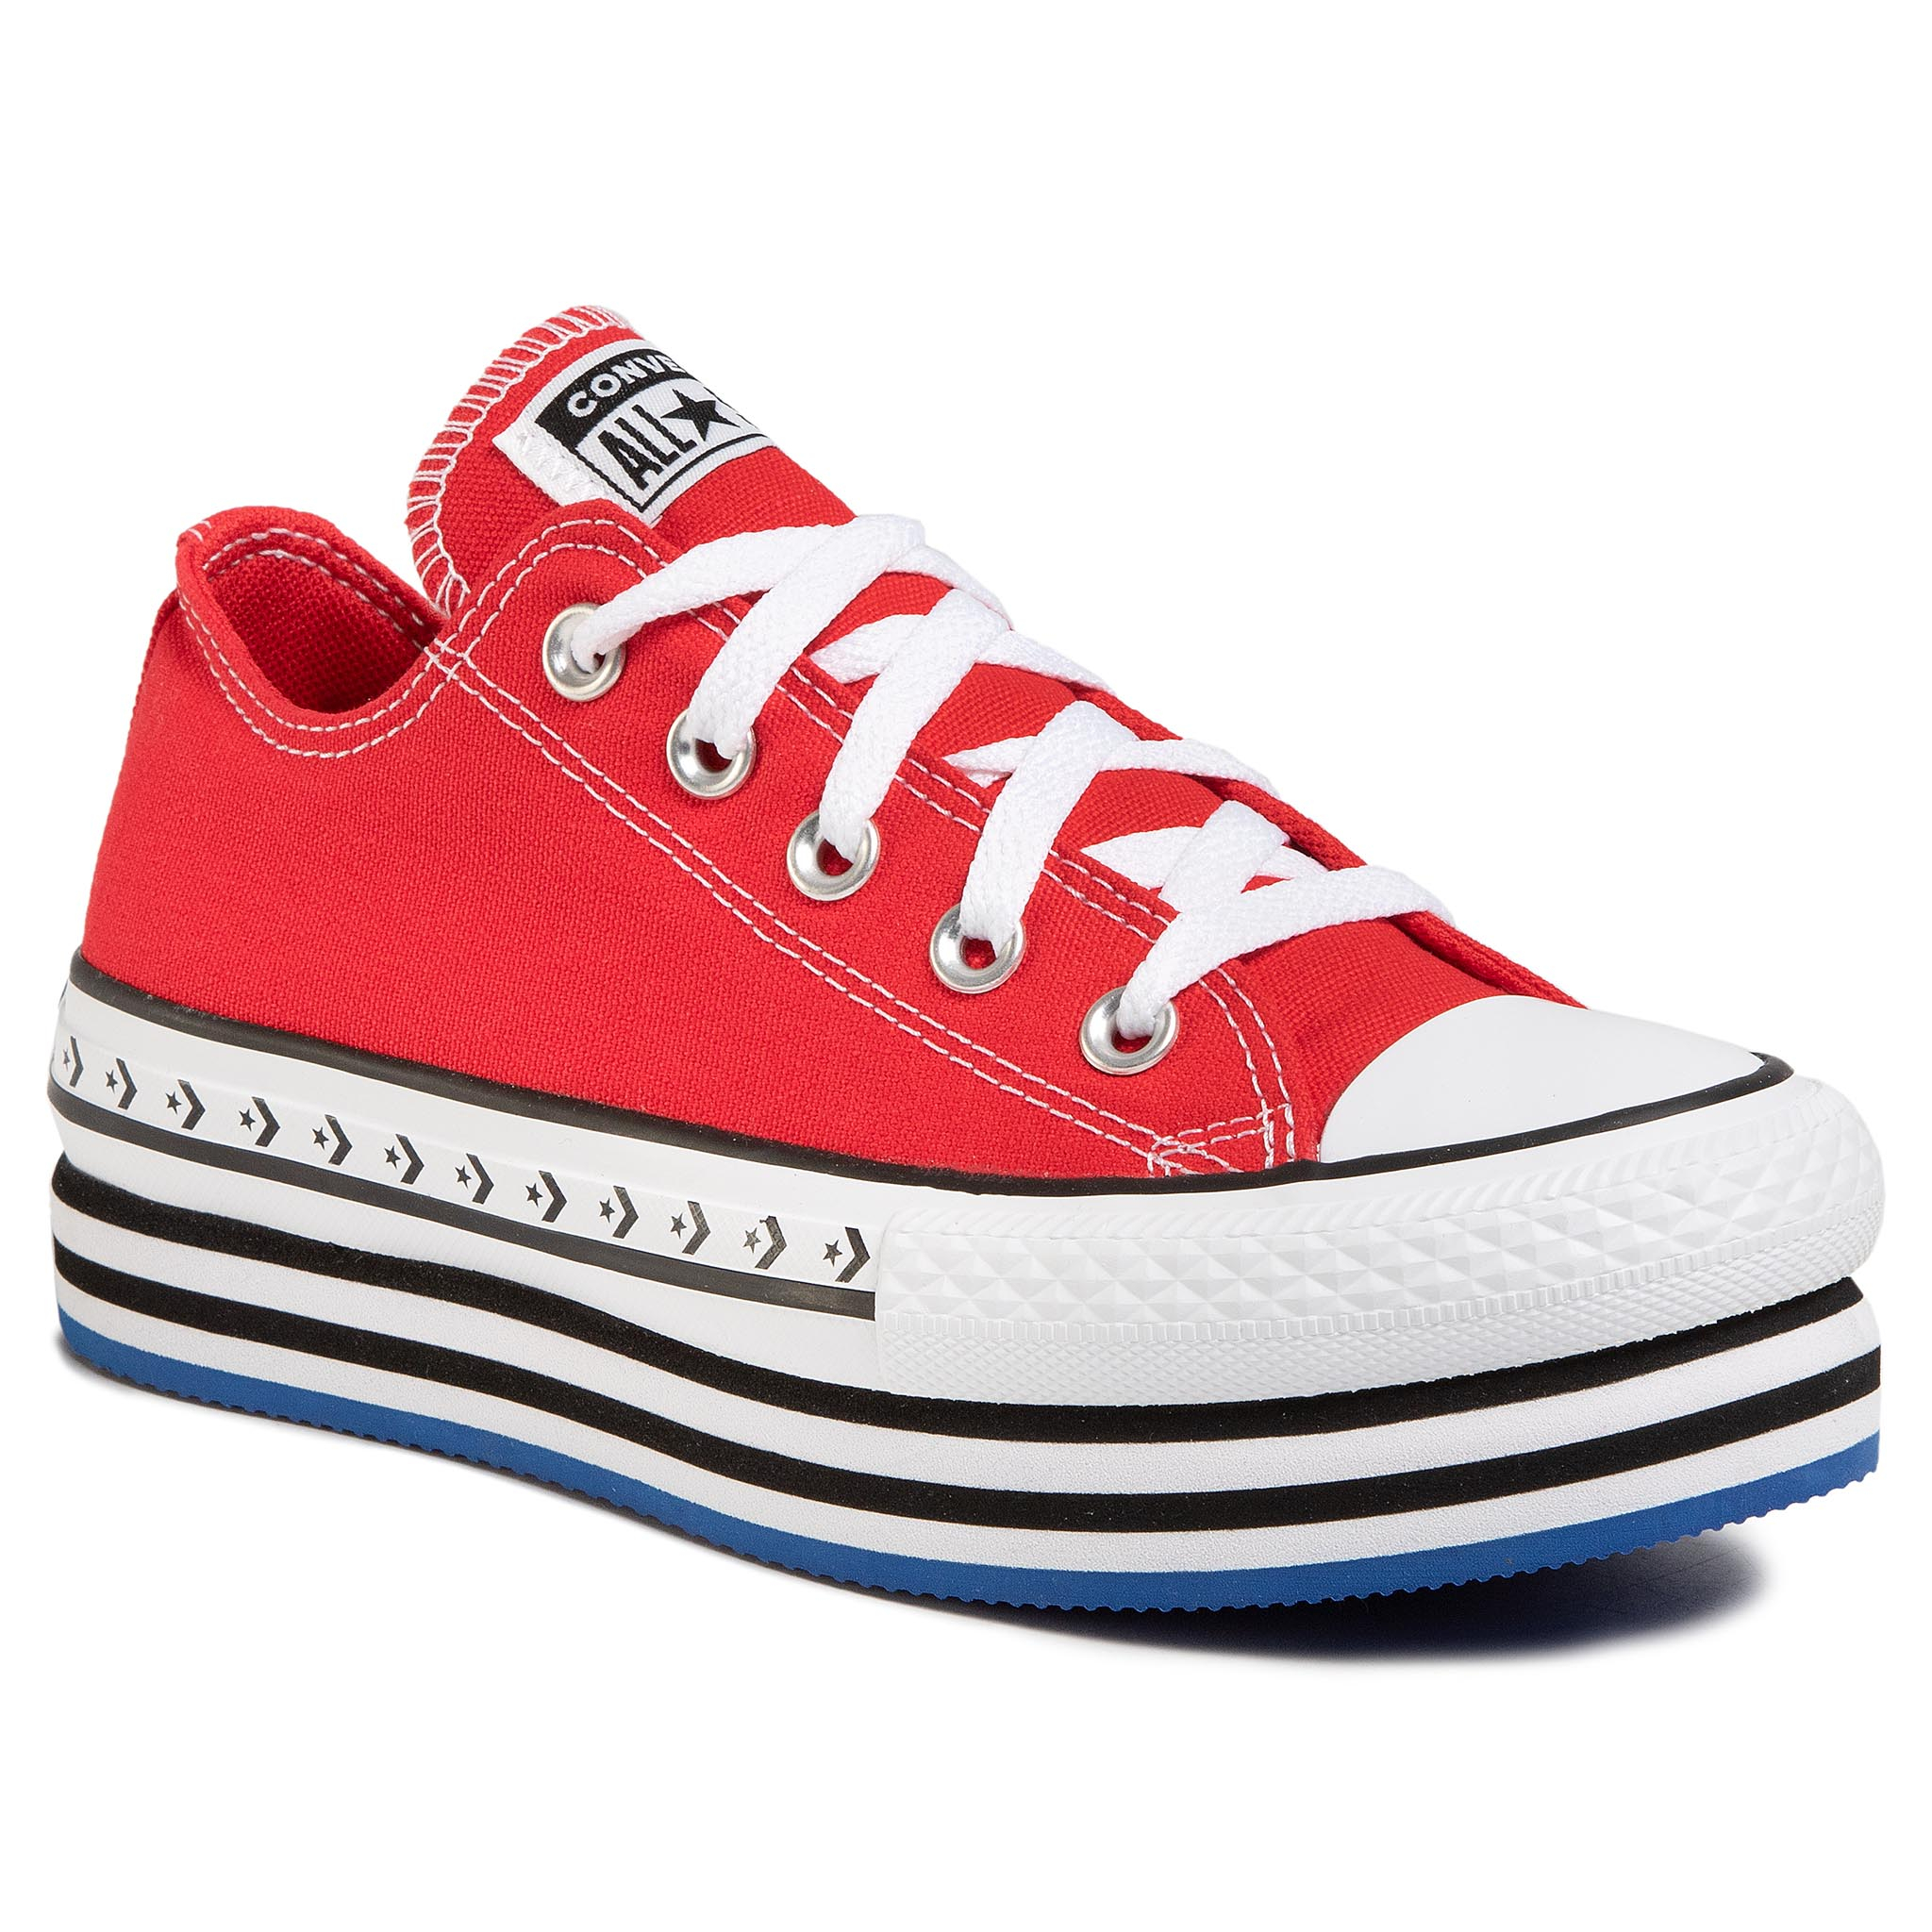 Teniși Converse - Ctas Platform Layer Ox 566763c University Red/White/Black imagine epantofi.ro 2021